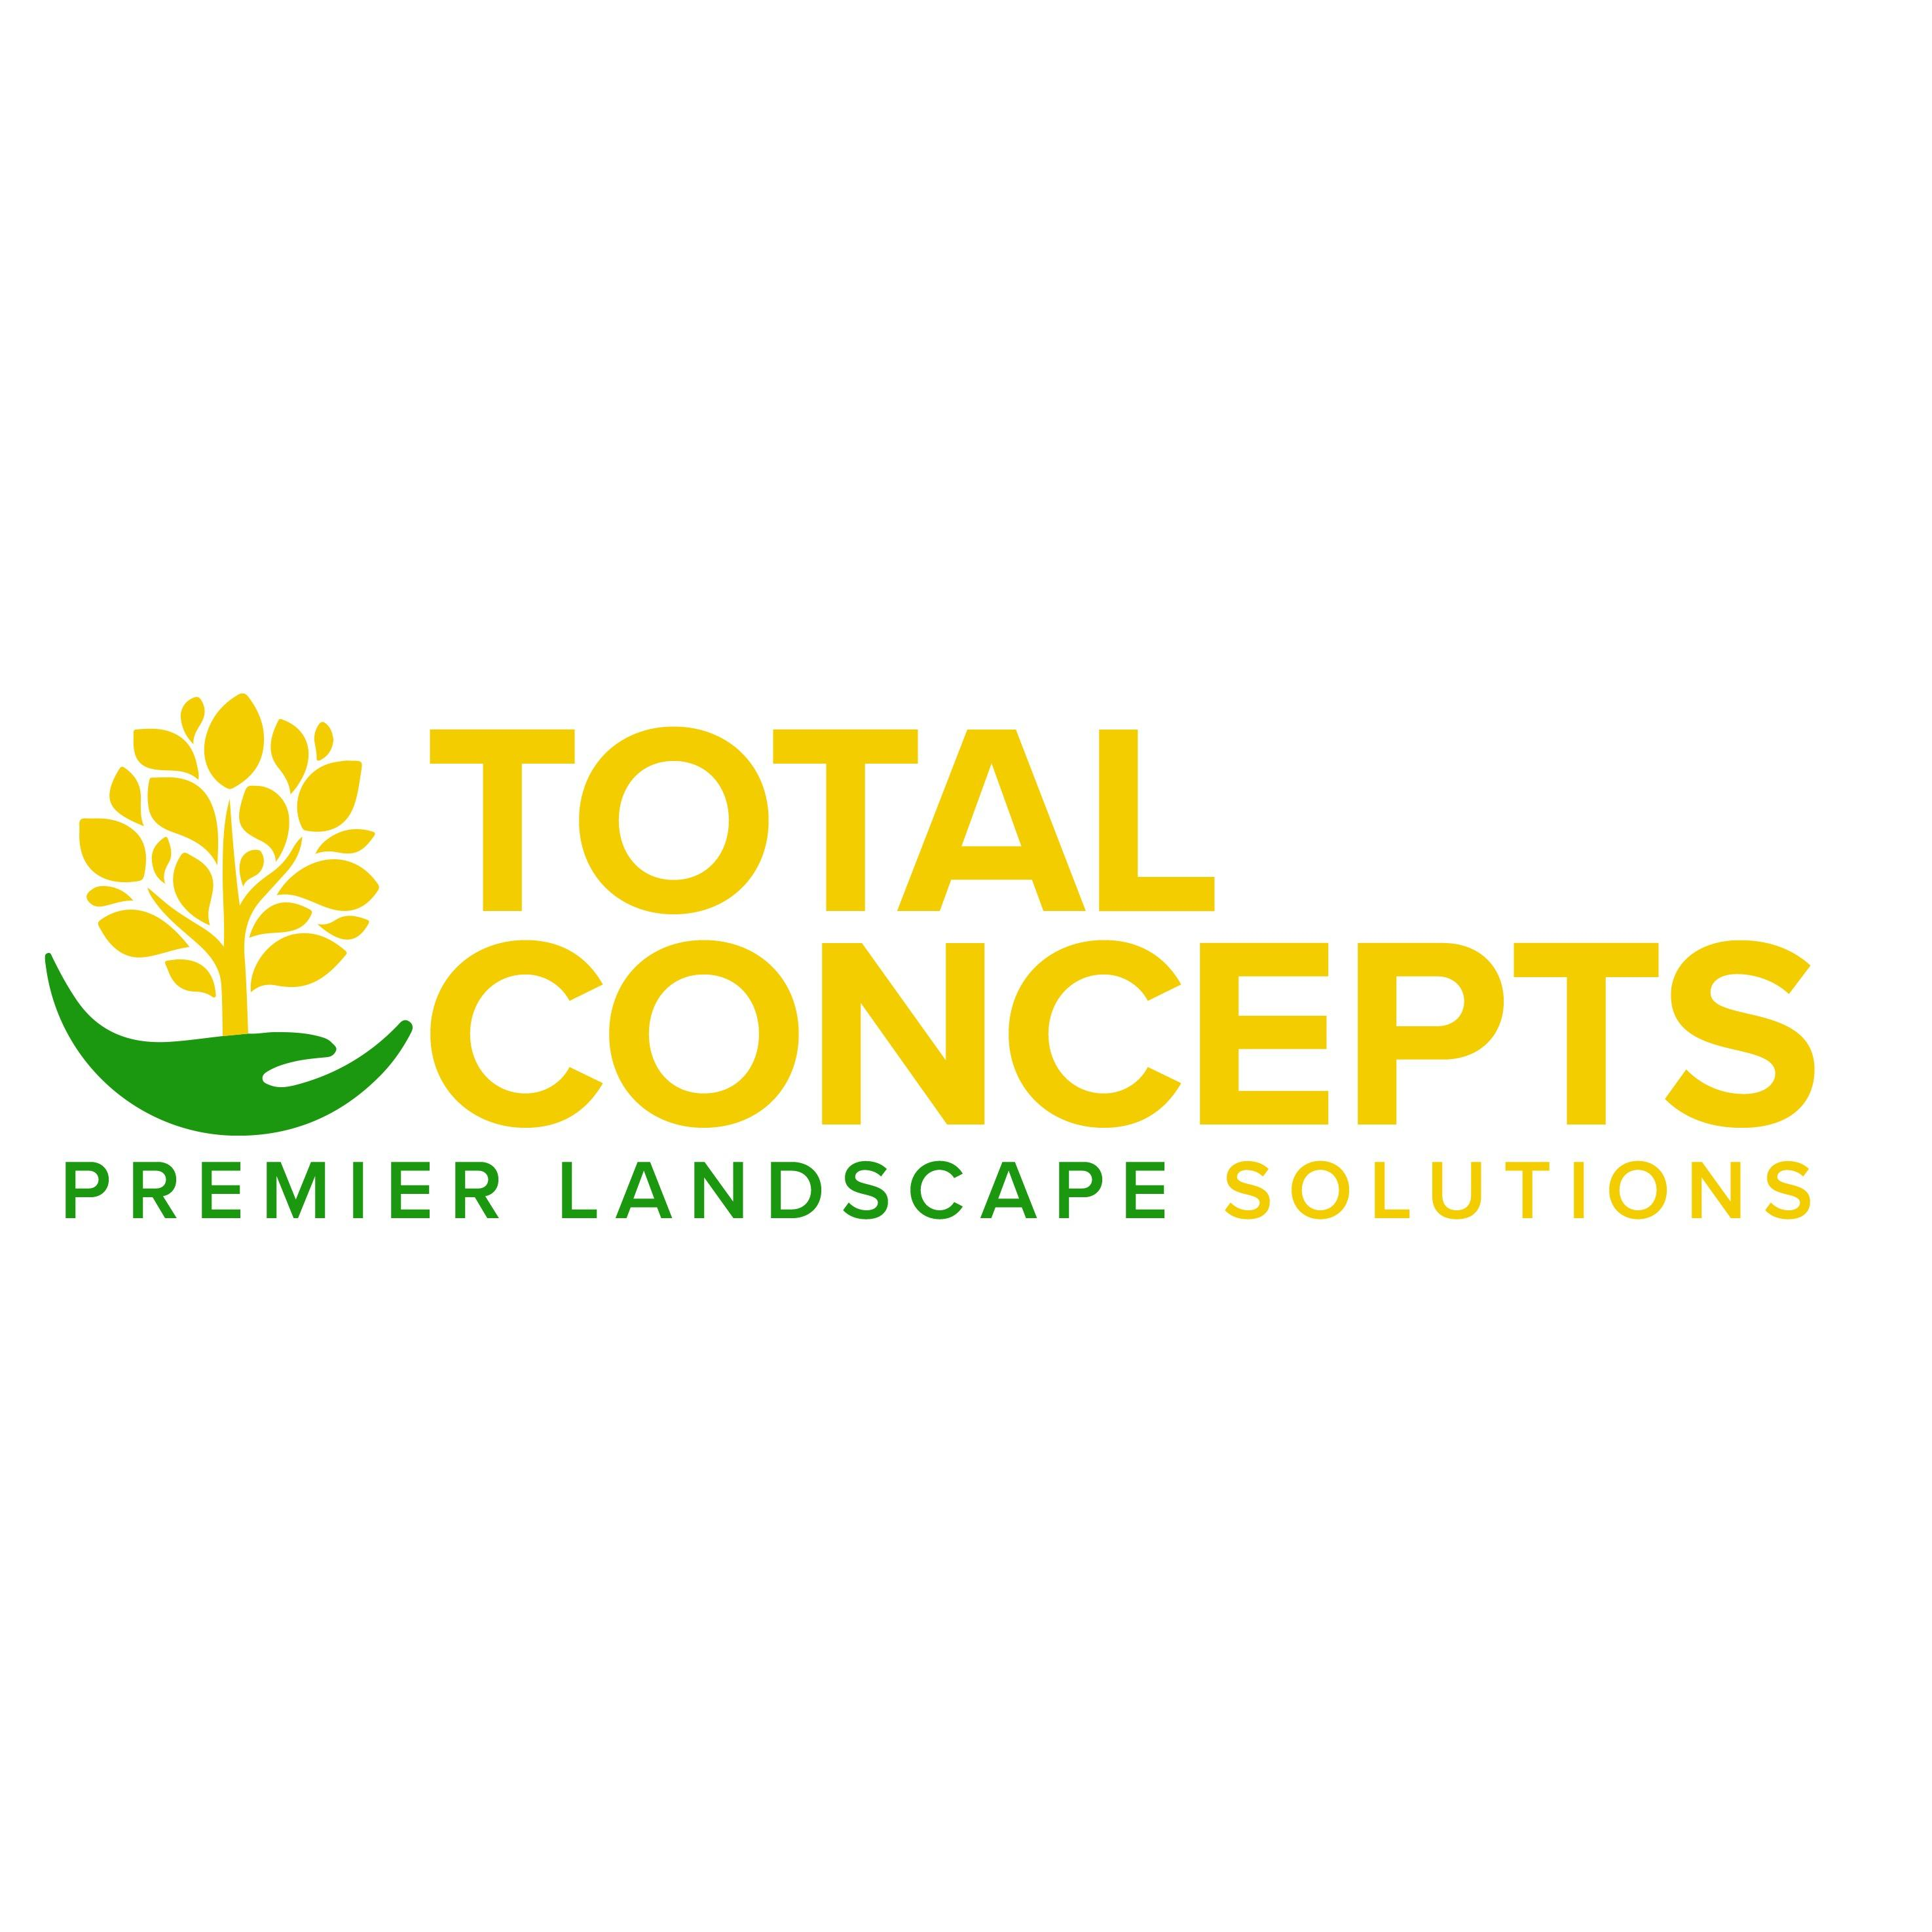 Total Concepts image 13